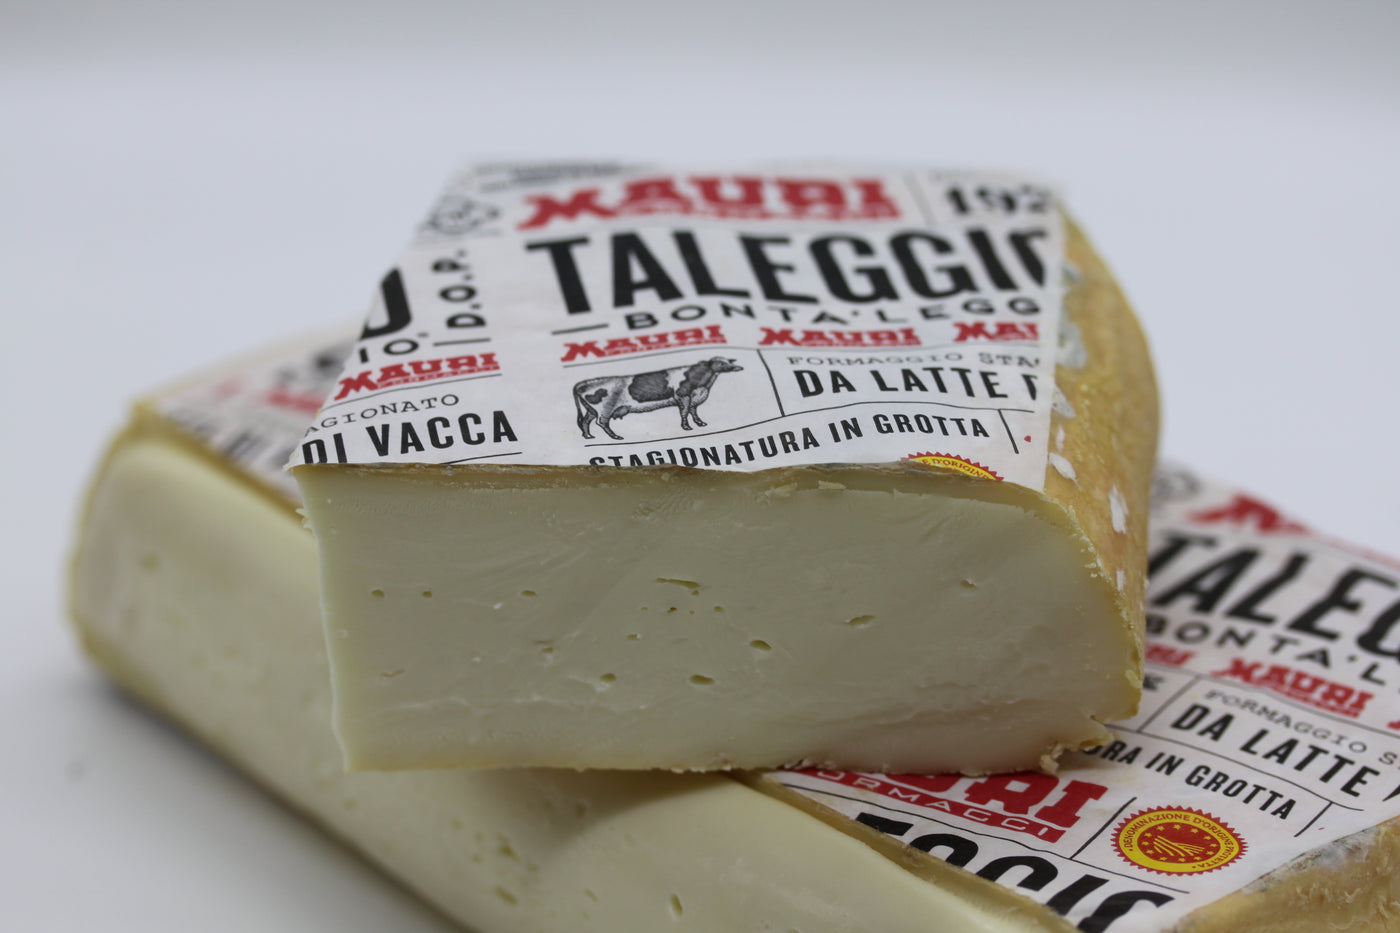 Taleggio - Bring out the Caveman